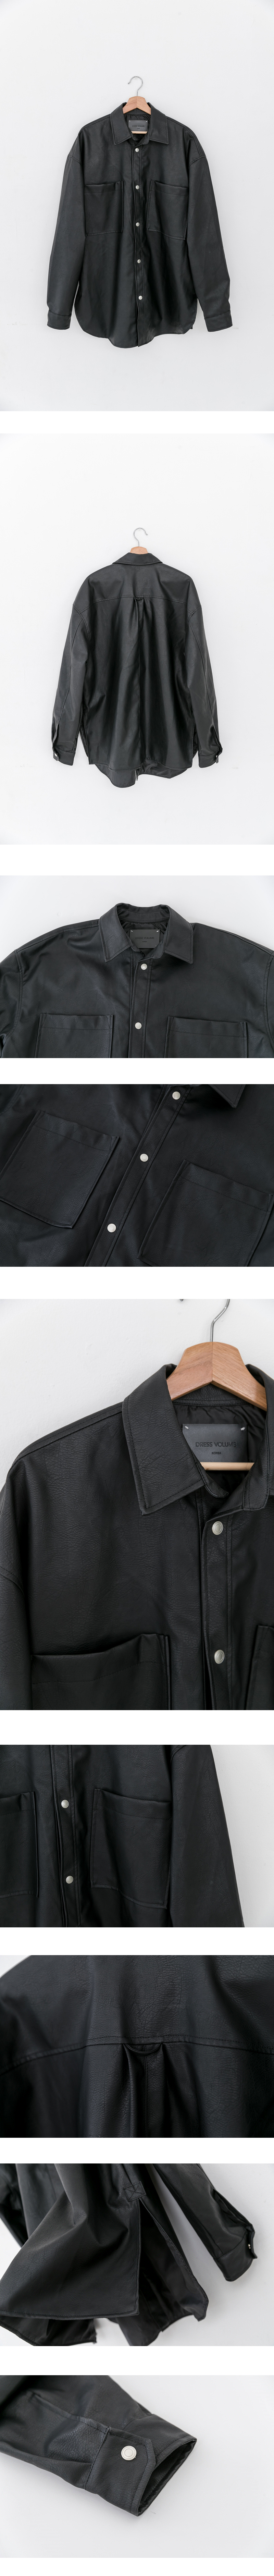 레이디 볼륨(LADY VOLUME) [남여공용]leather shirt jacket